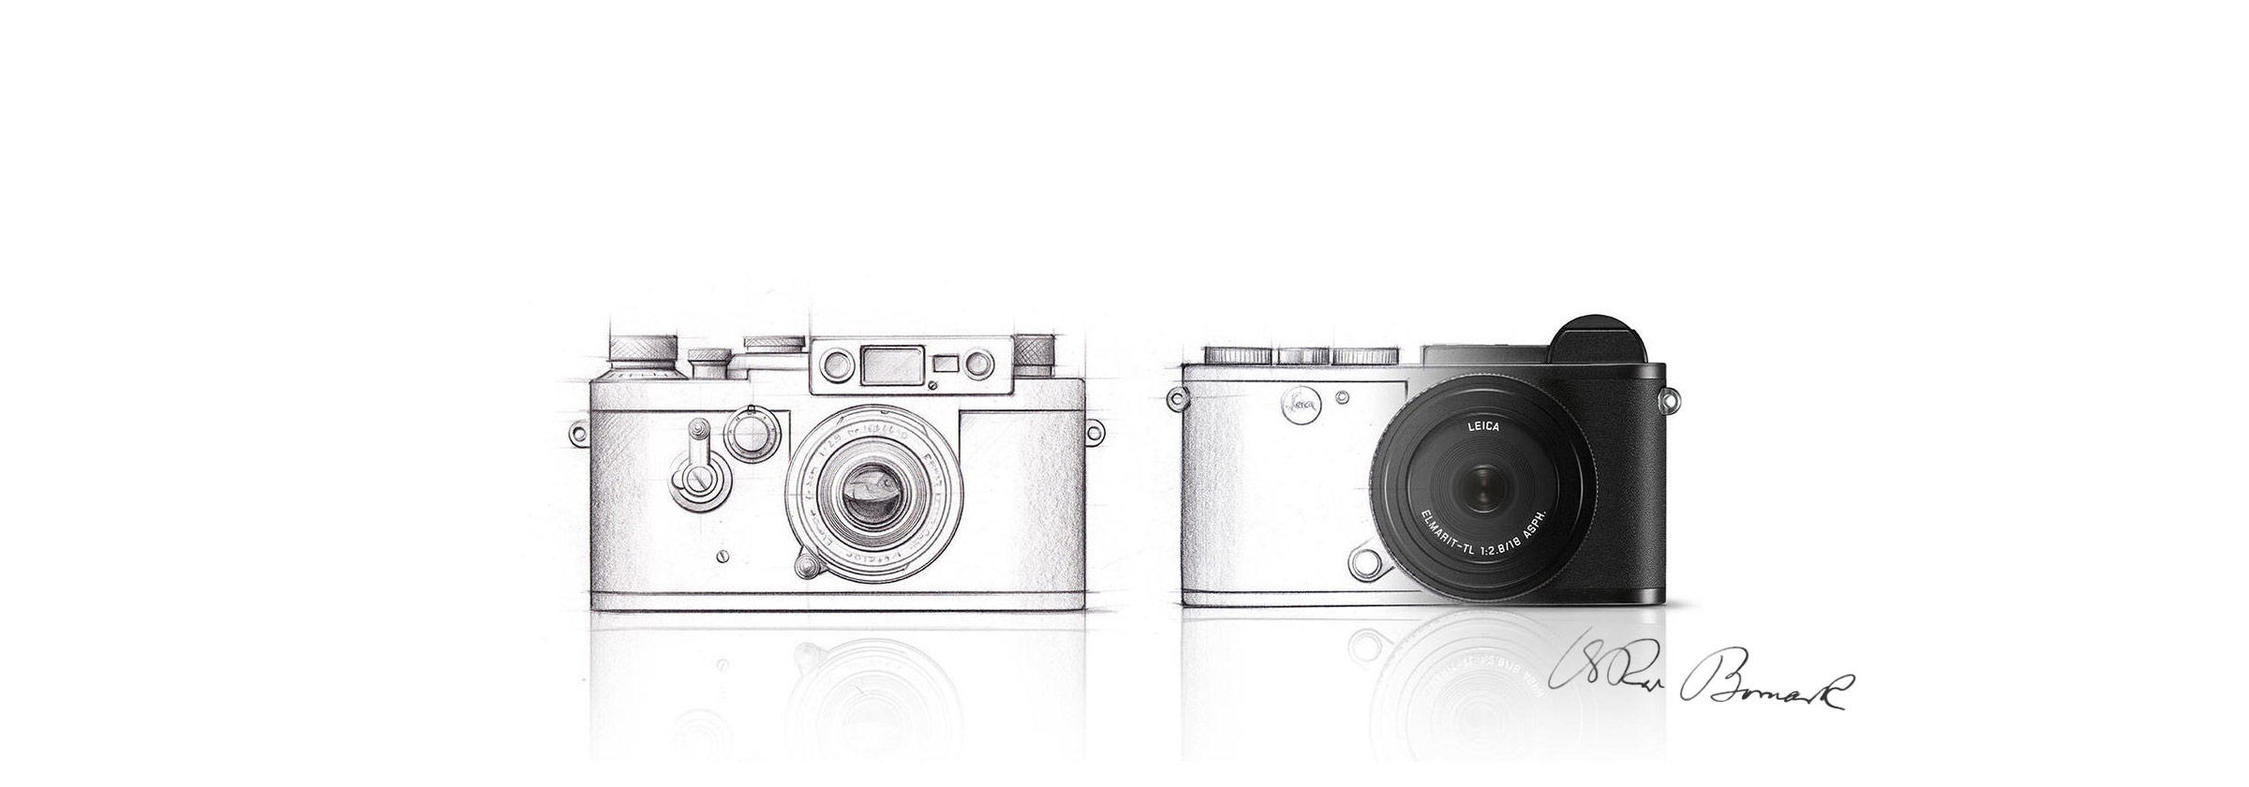 Leica ライカ CL Vintage Mirrorless Camera